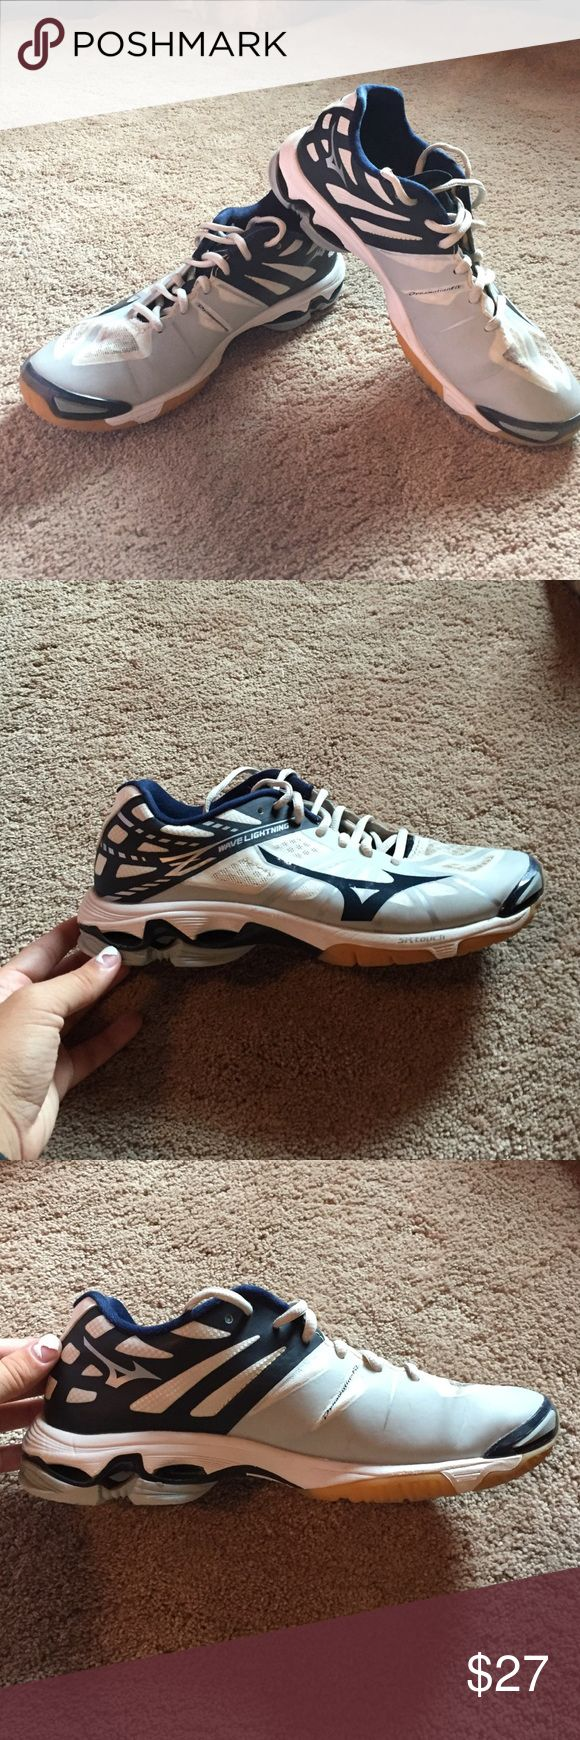 Volleyball Court Shoes Mizuno Volleyball Shoes, worn a few games but still in great condition. Never wore them outside, only in gym. Mizuno Shoes Athletic Shoes